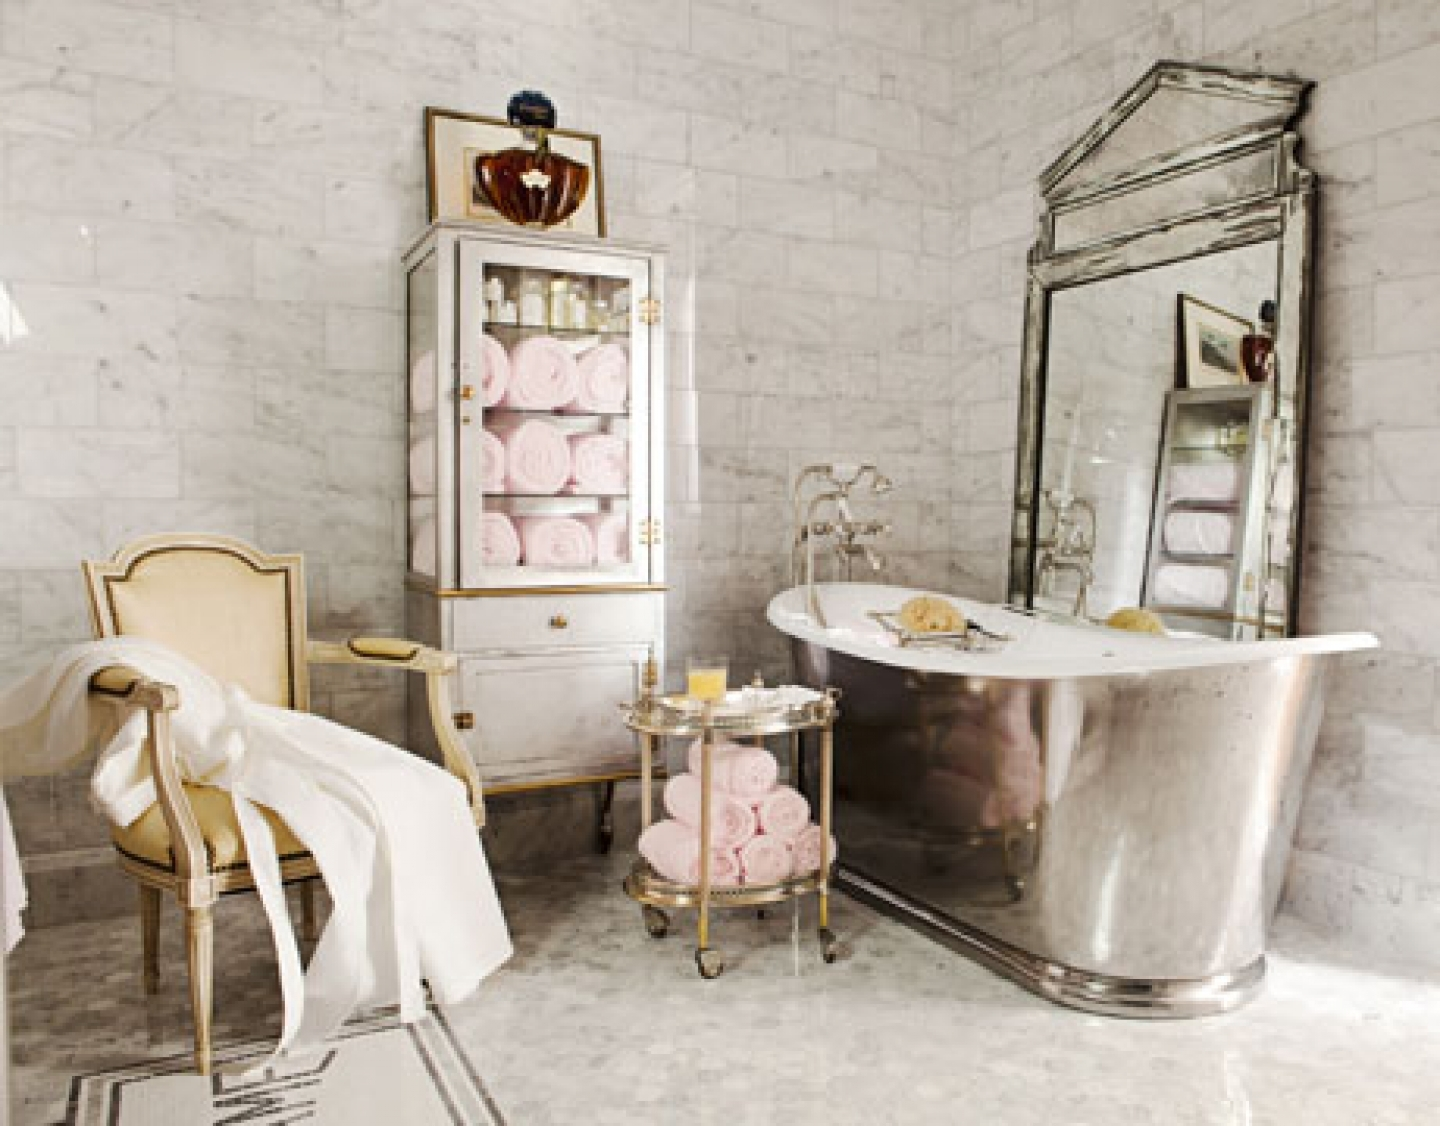 Parisian Style Bathroom Accessories Bathroom With French Inspired Mirrors (Image 15 of 15)